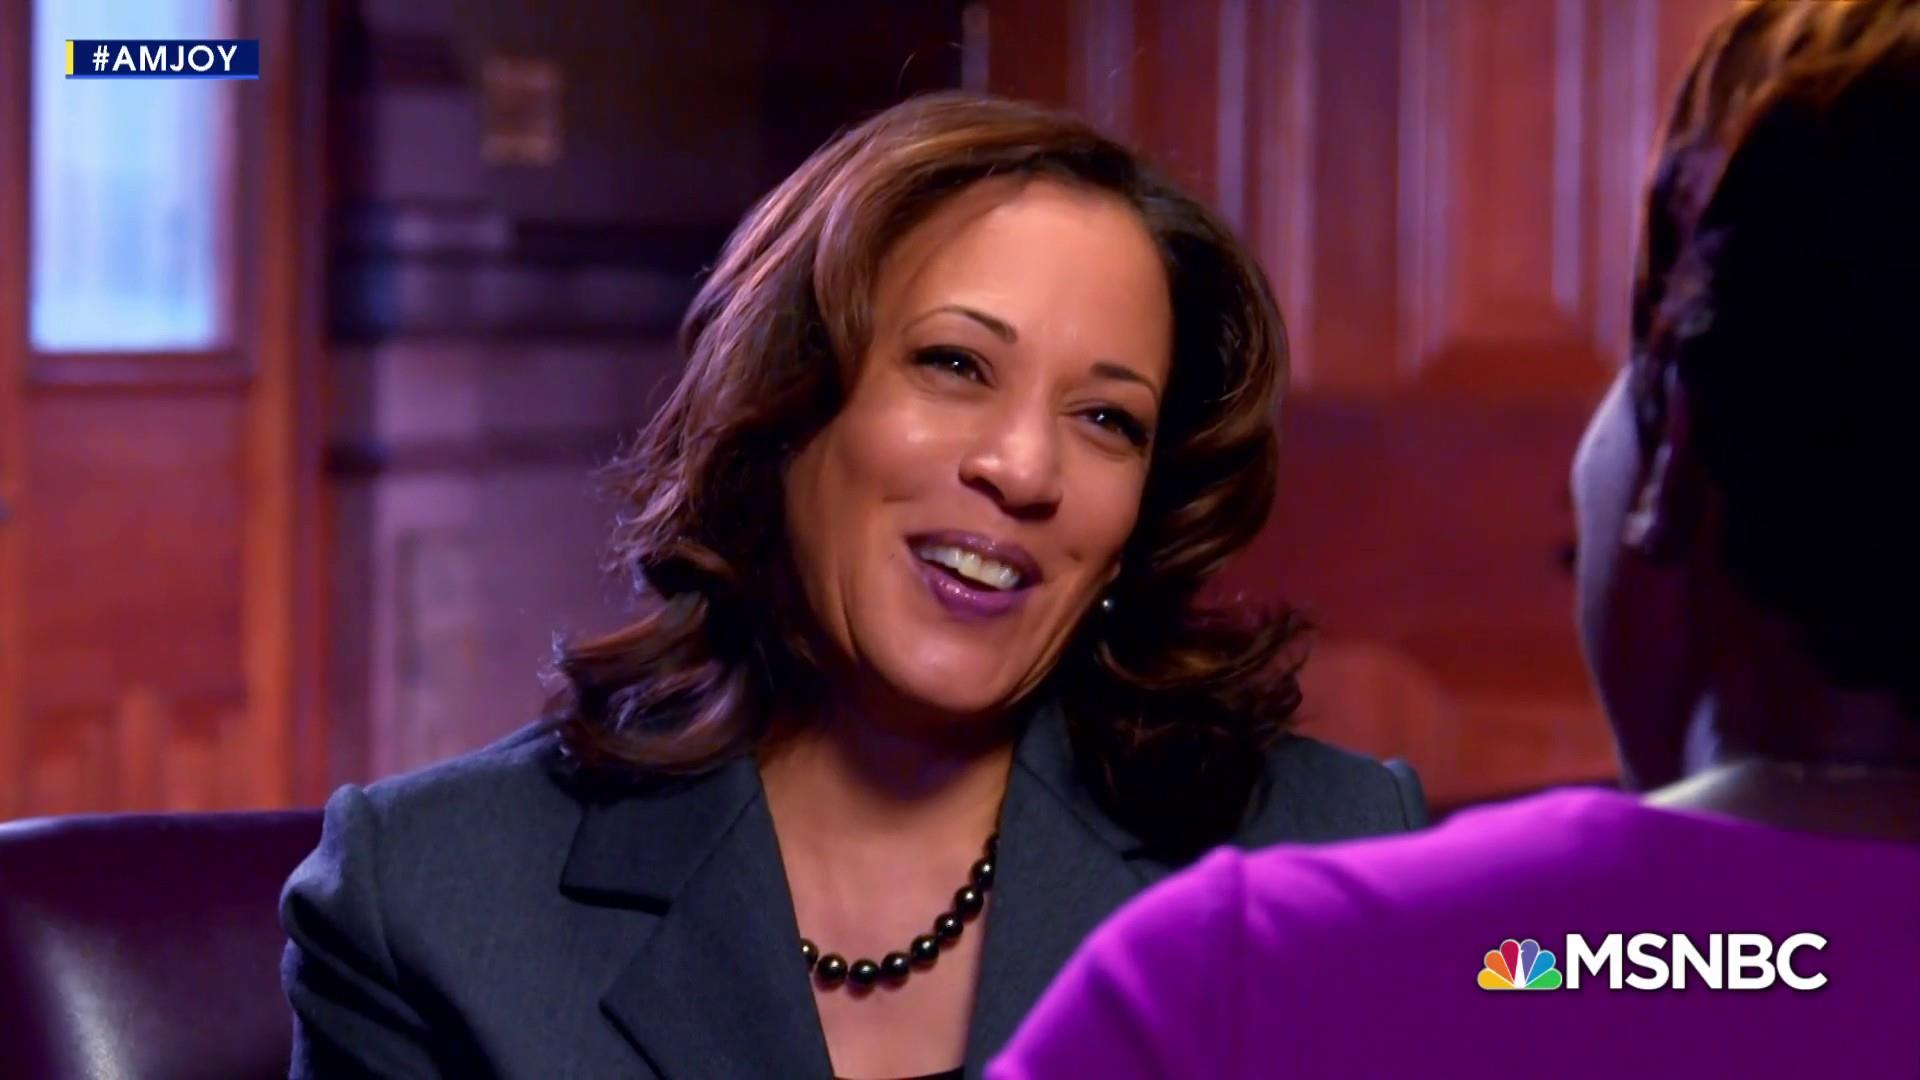 Kamala Harris on climate change, identity politics and her plan for working families